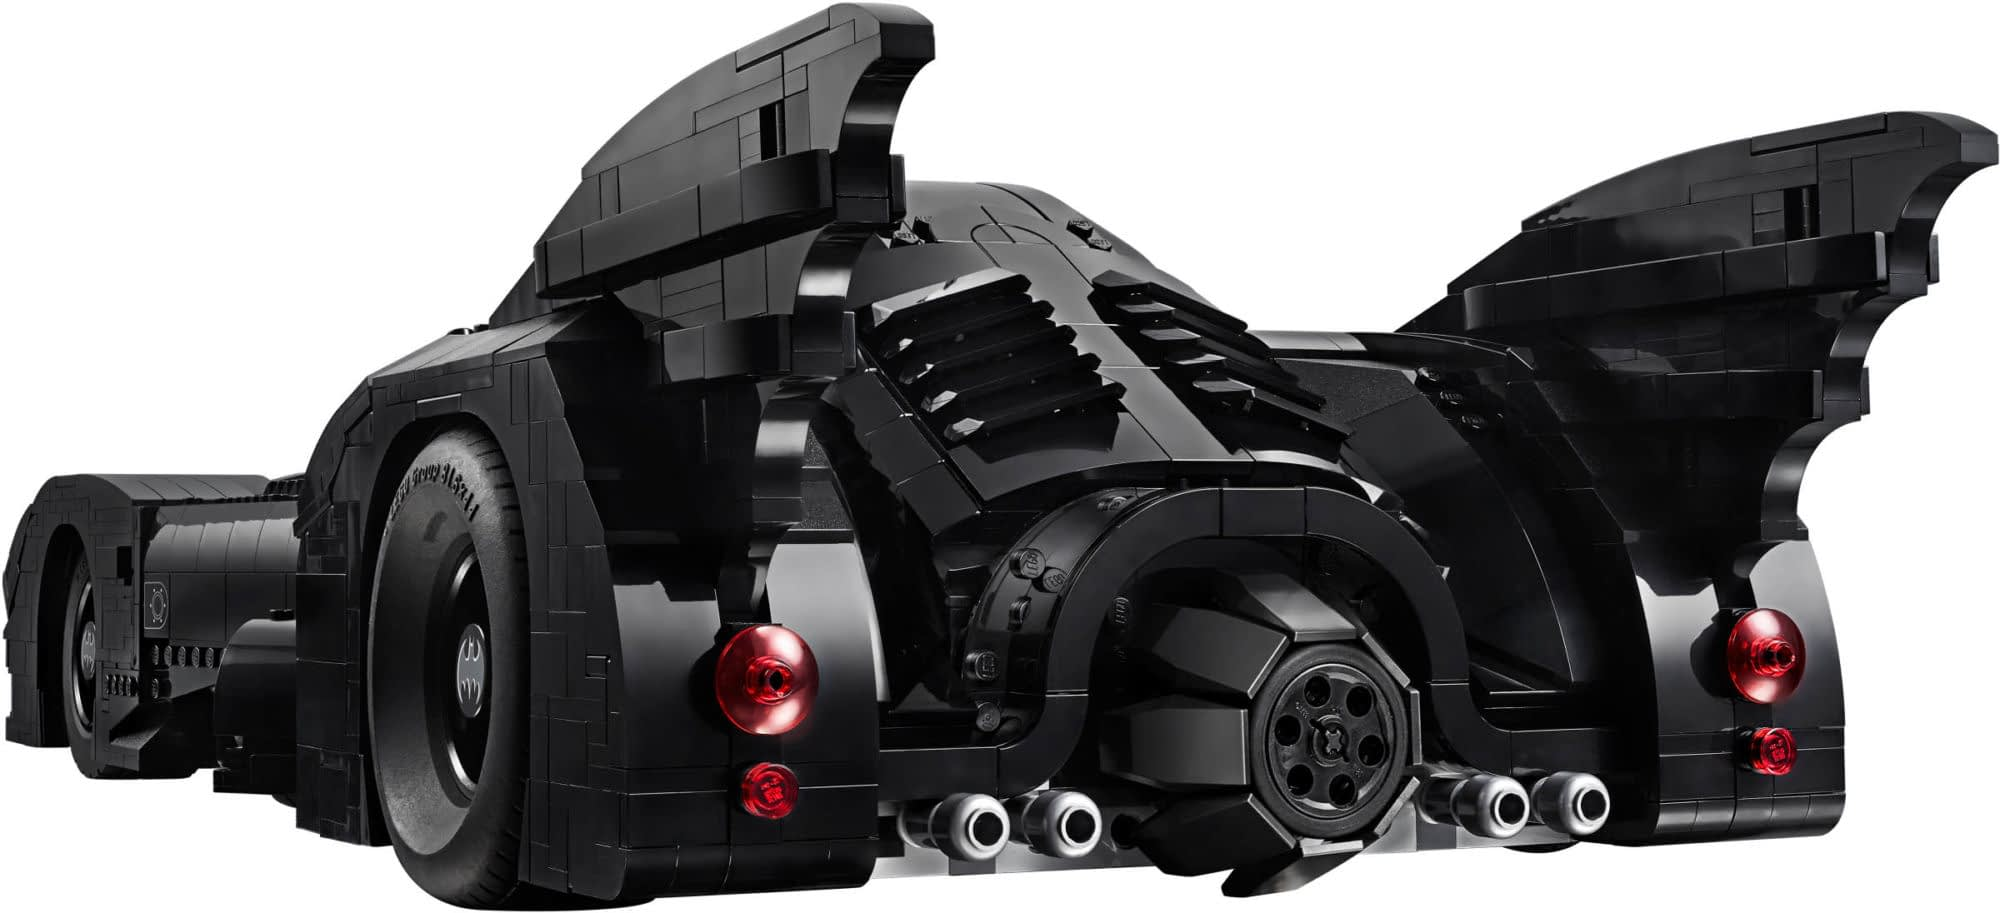 Lego Batman 1989 Batmobile Is Here to Pick You Up